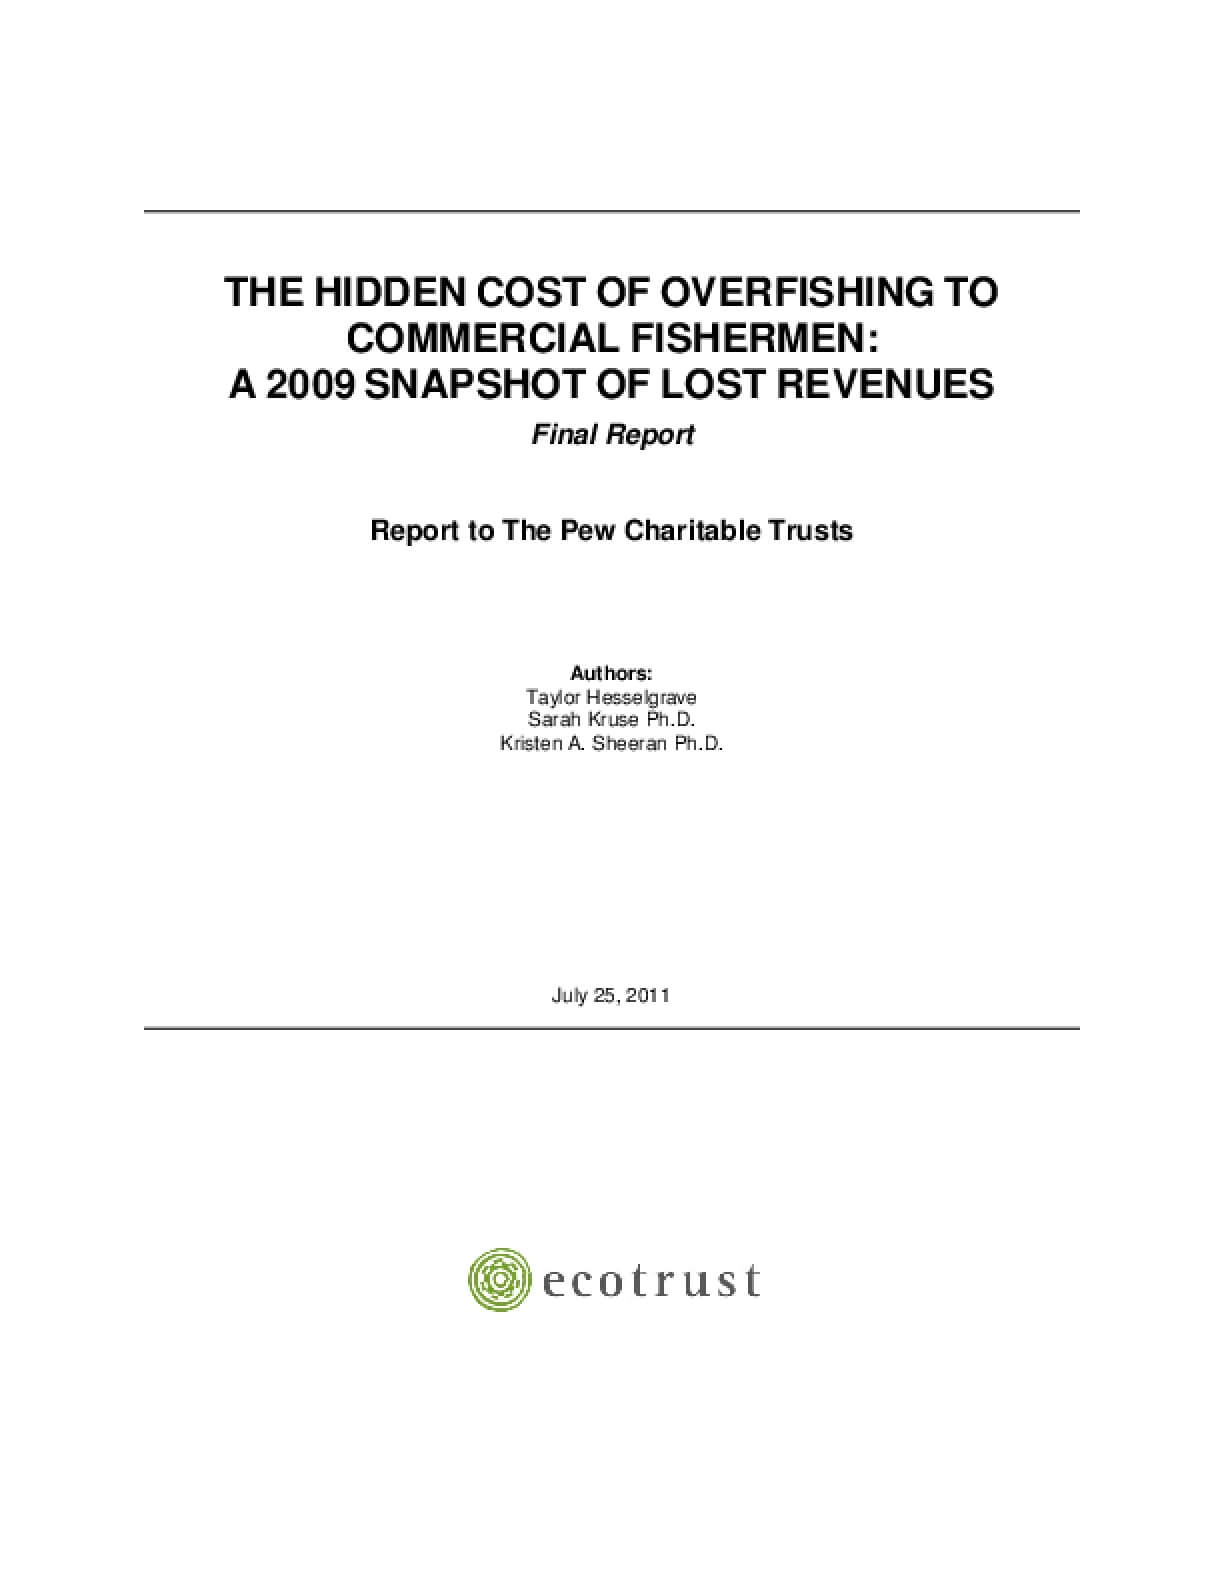 The Hidden Cost of Overfishing To  Commercial Fishermen: A 2009 Snapshot of Lost Revenues